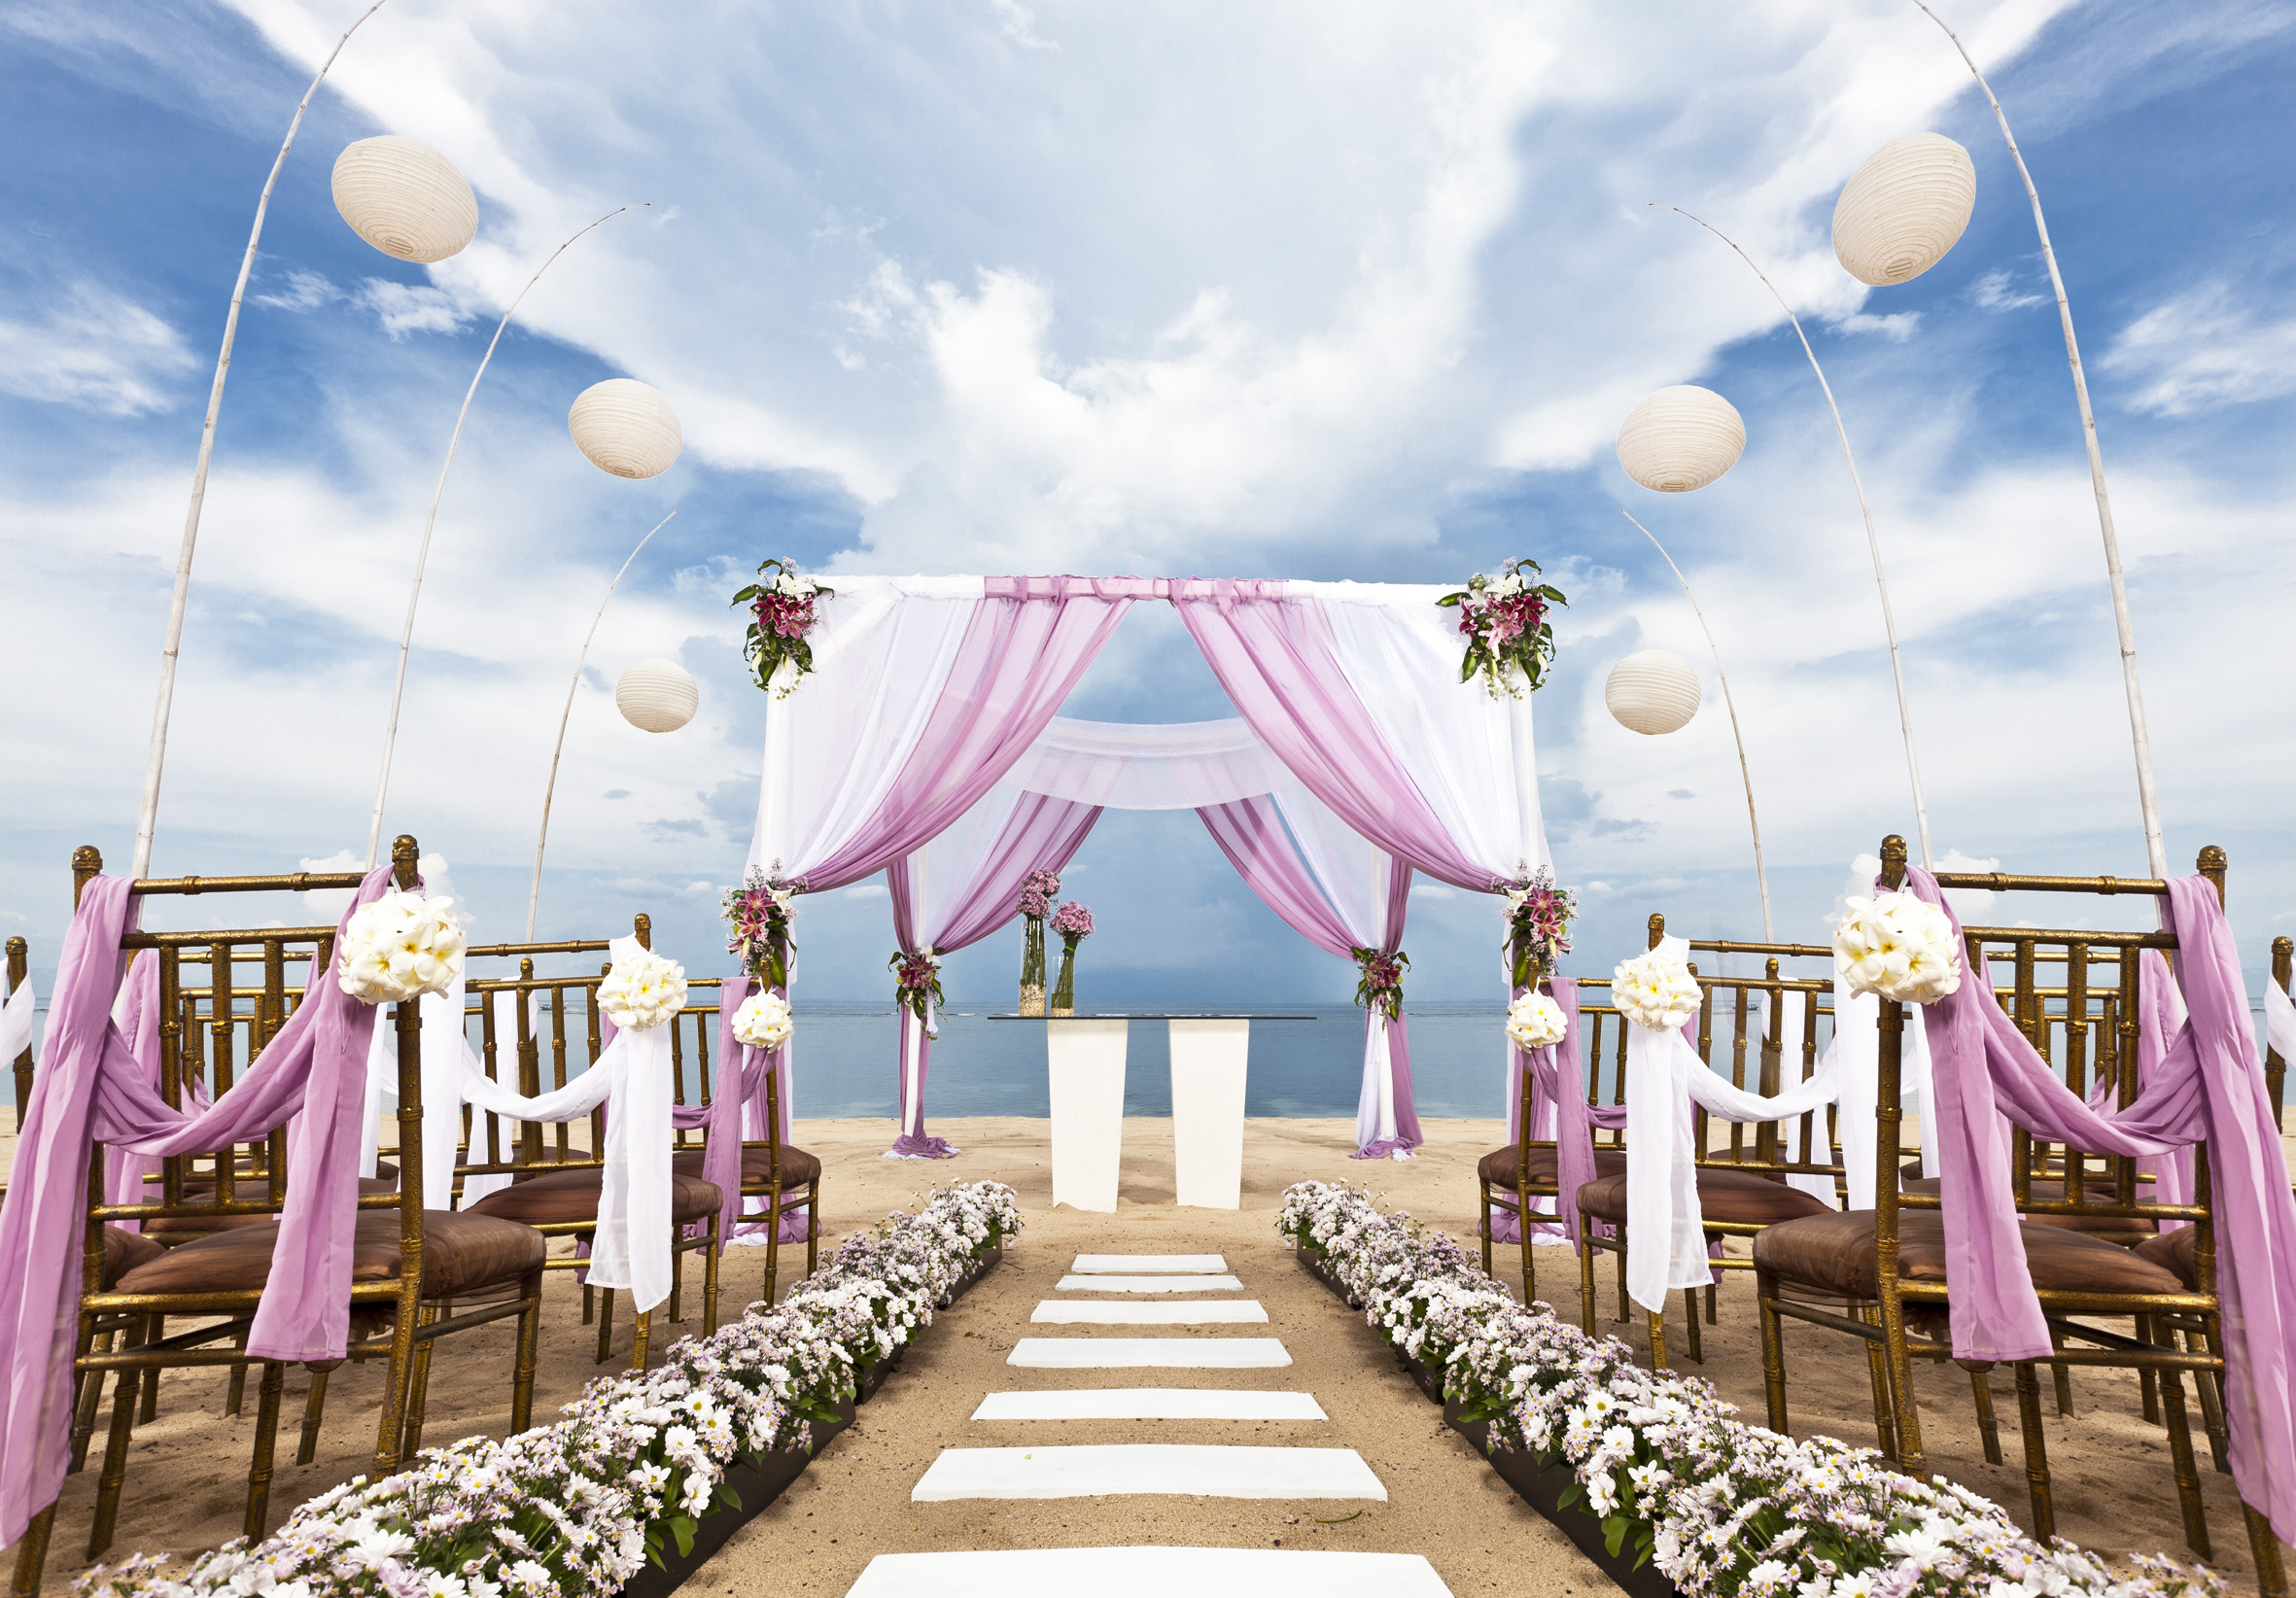 Wedding aisle the wedding blogspot for The best wedding decorations